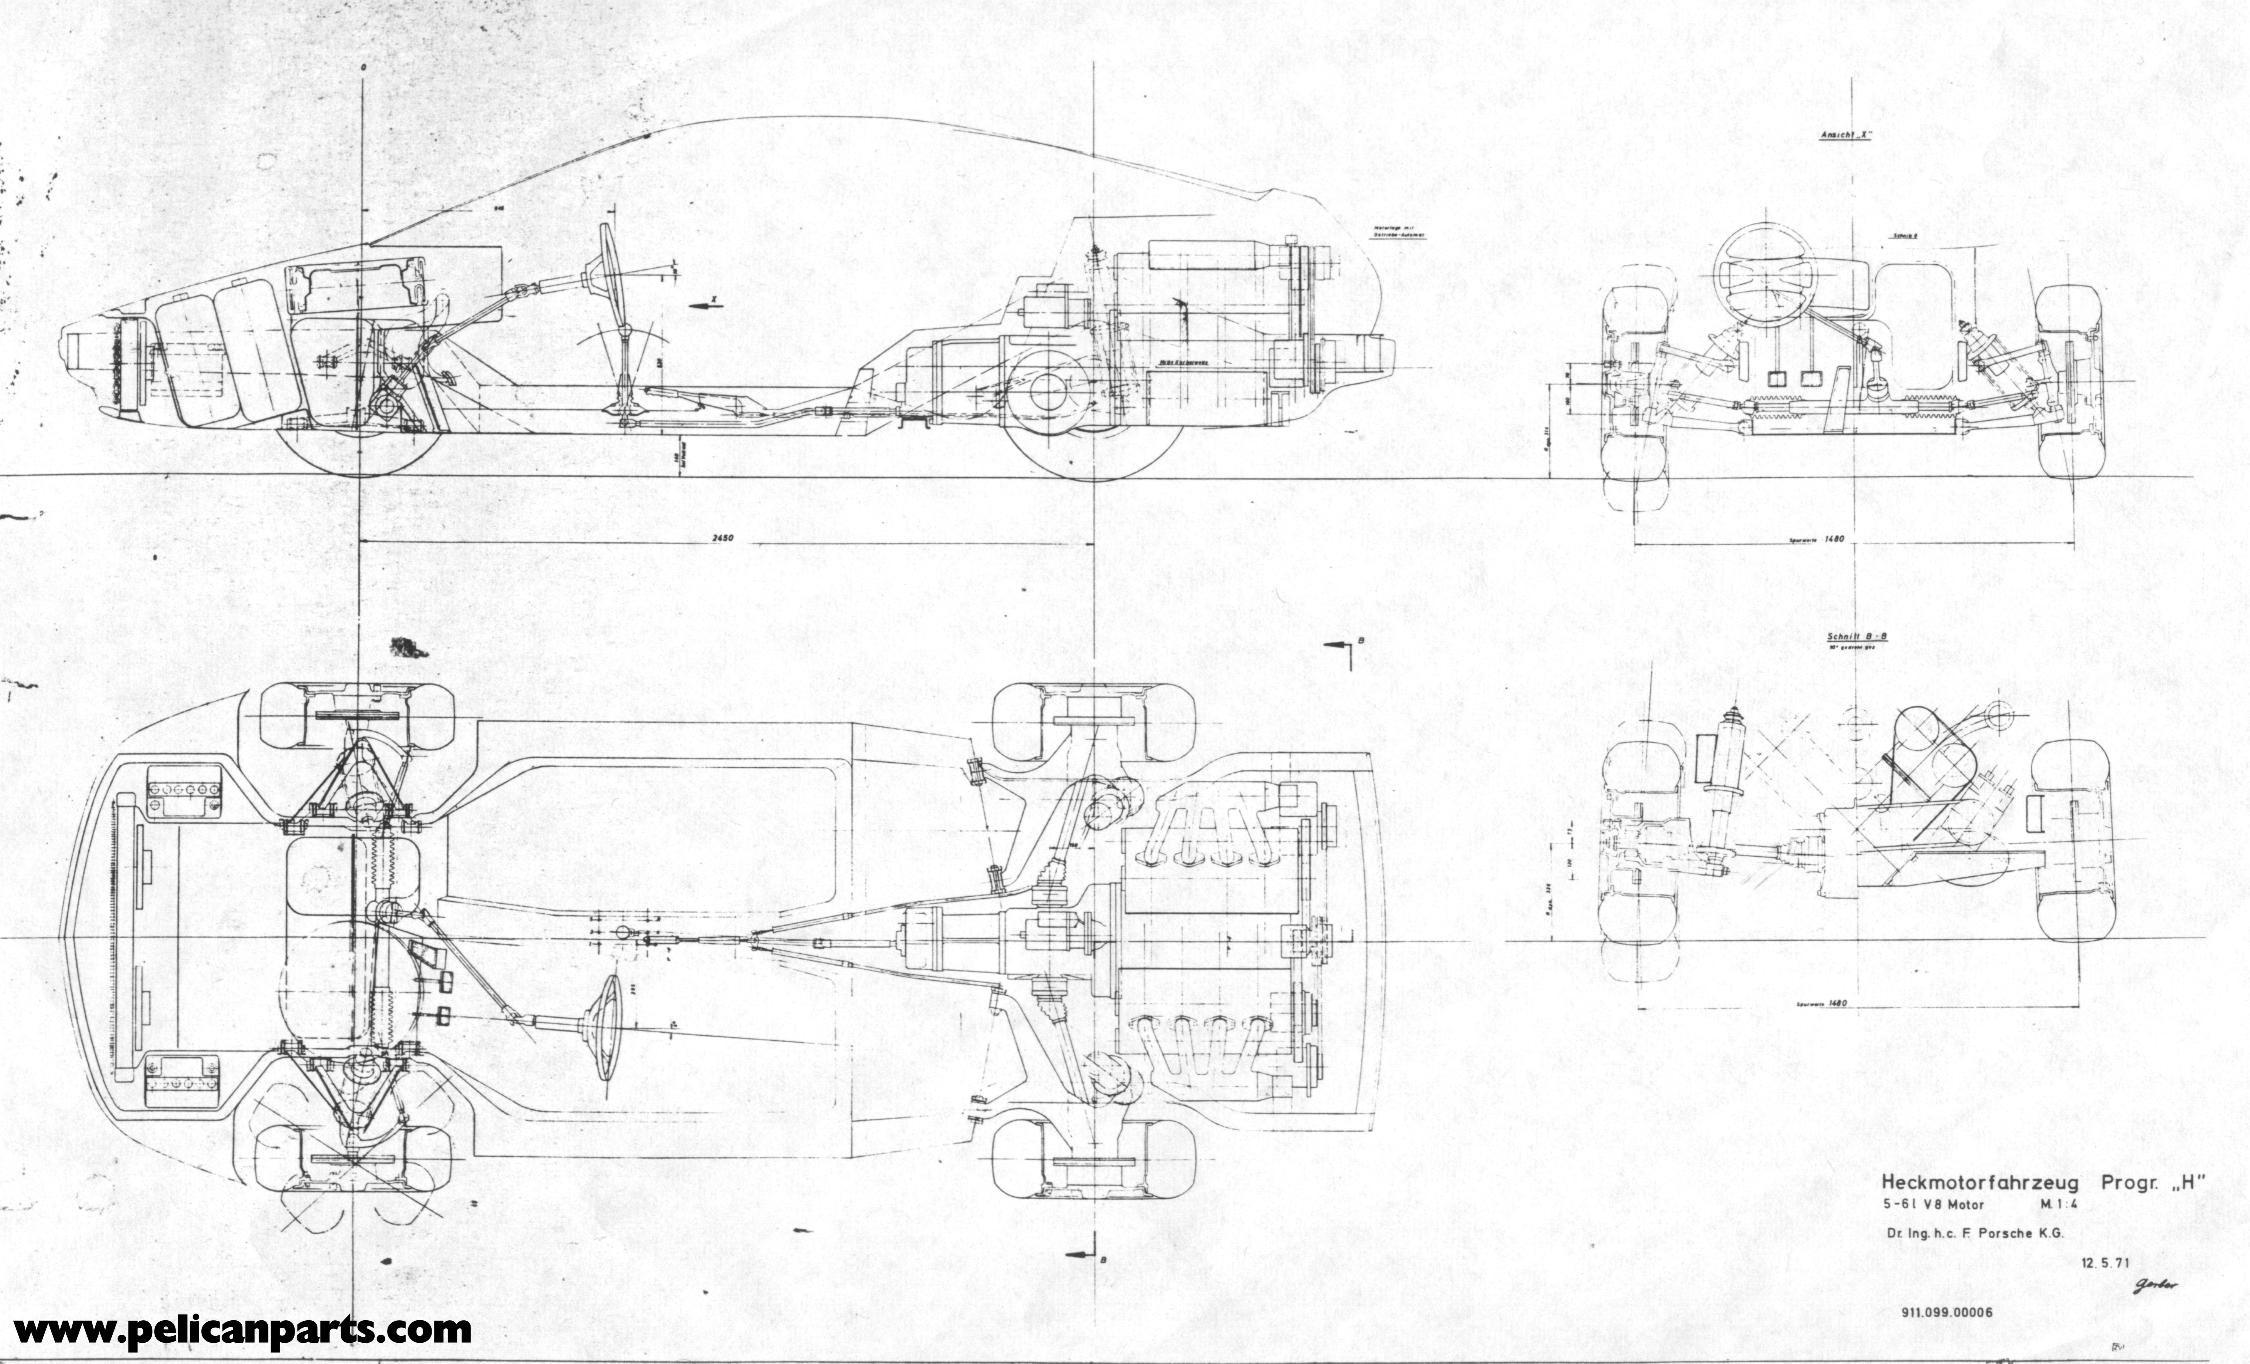 Pelican Parts: Original German 911/928 Prototype Blueprint